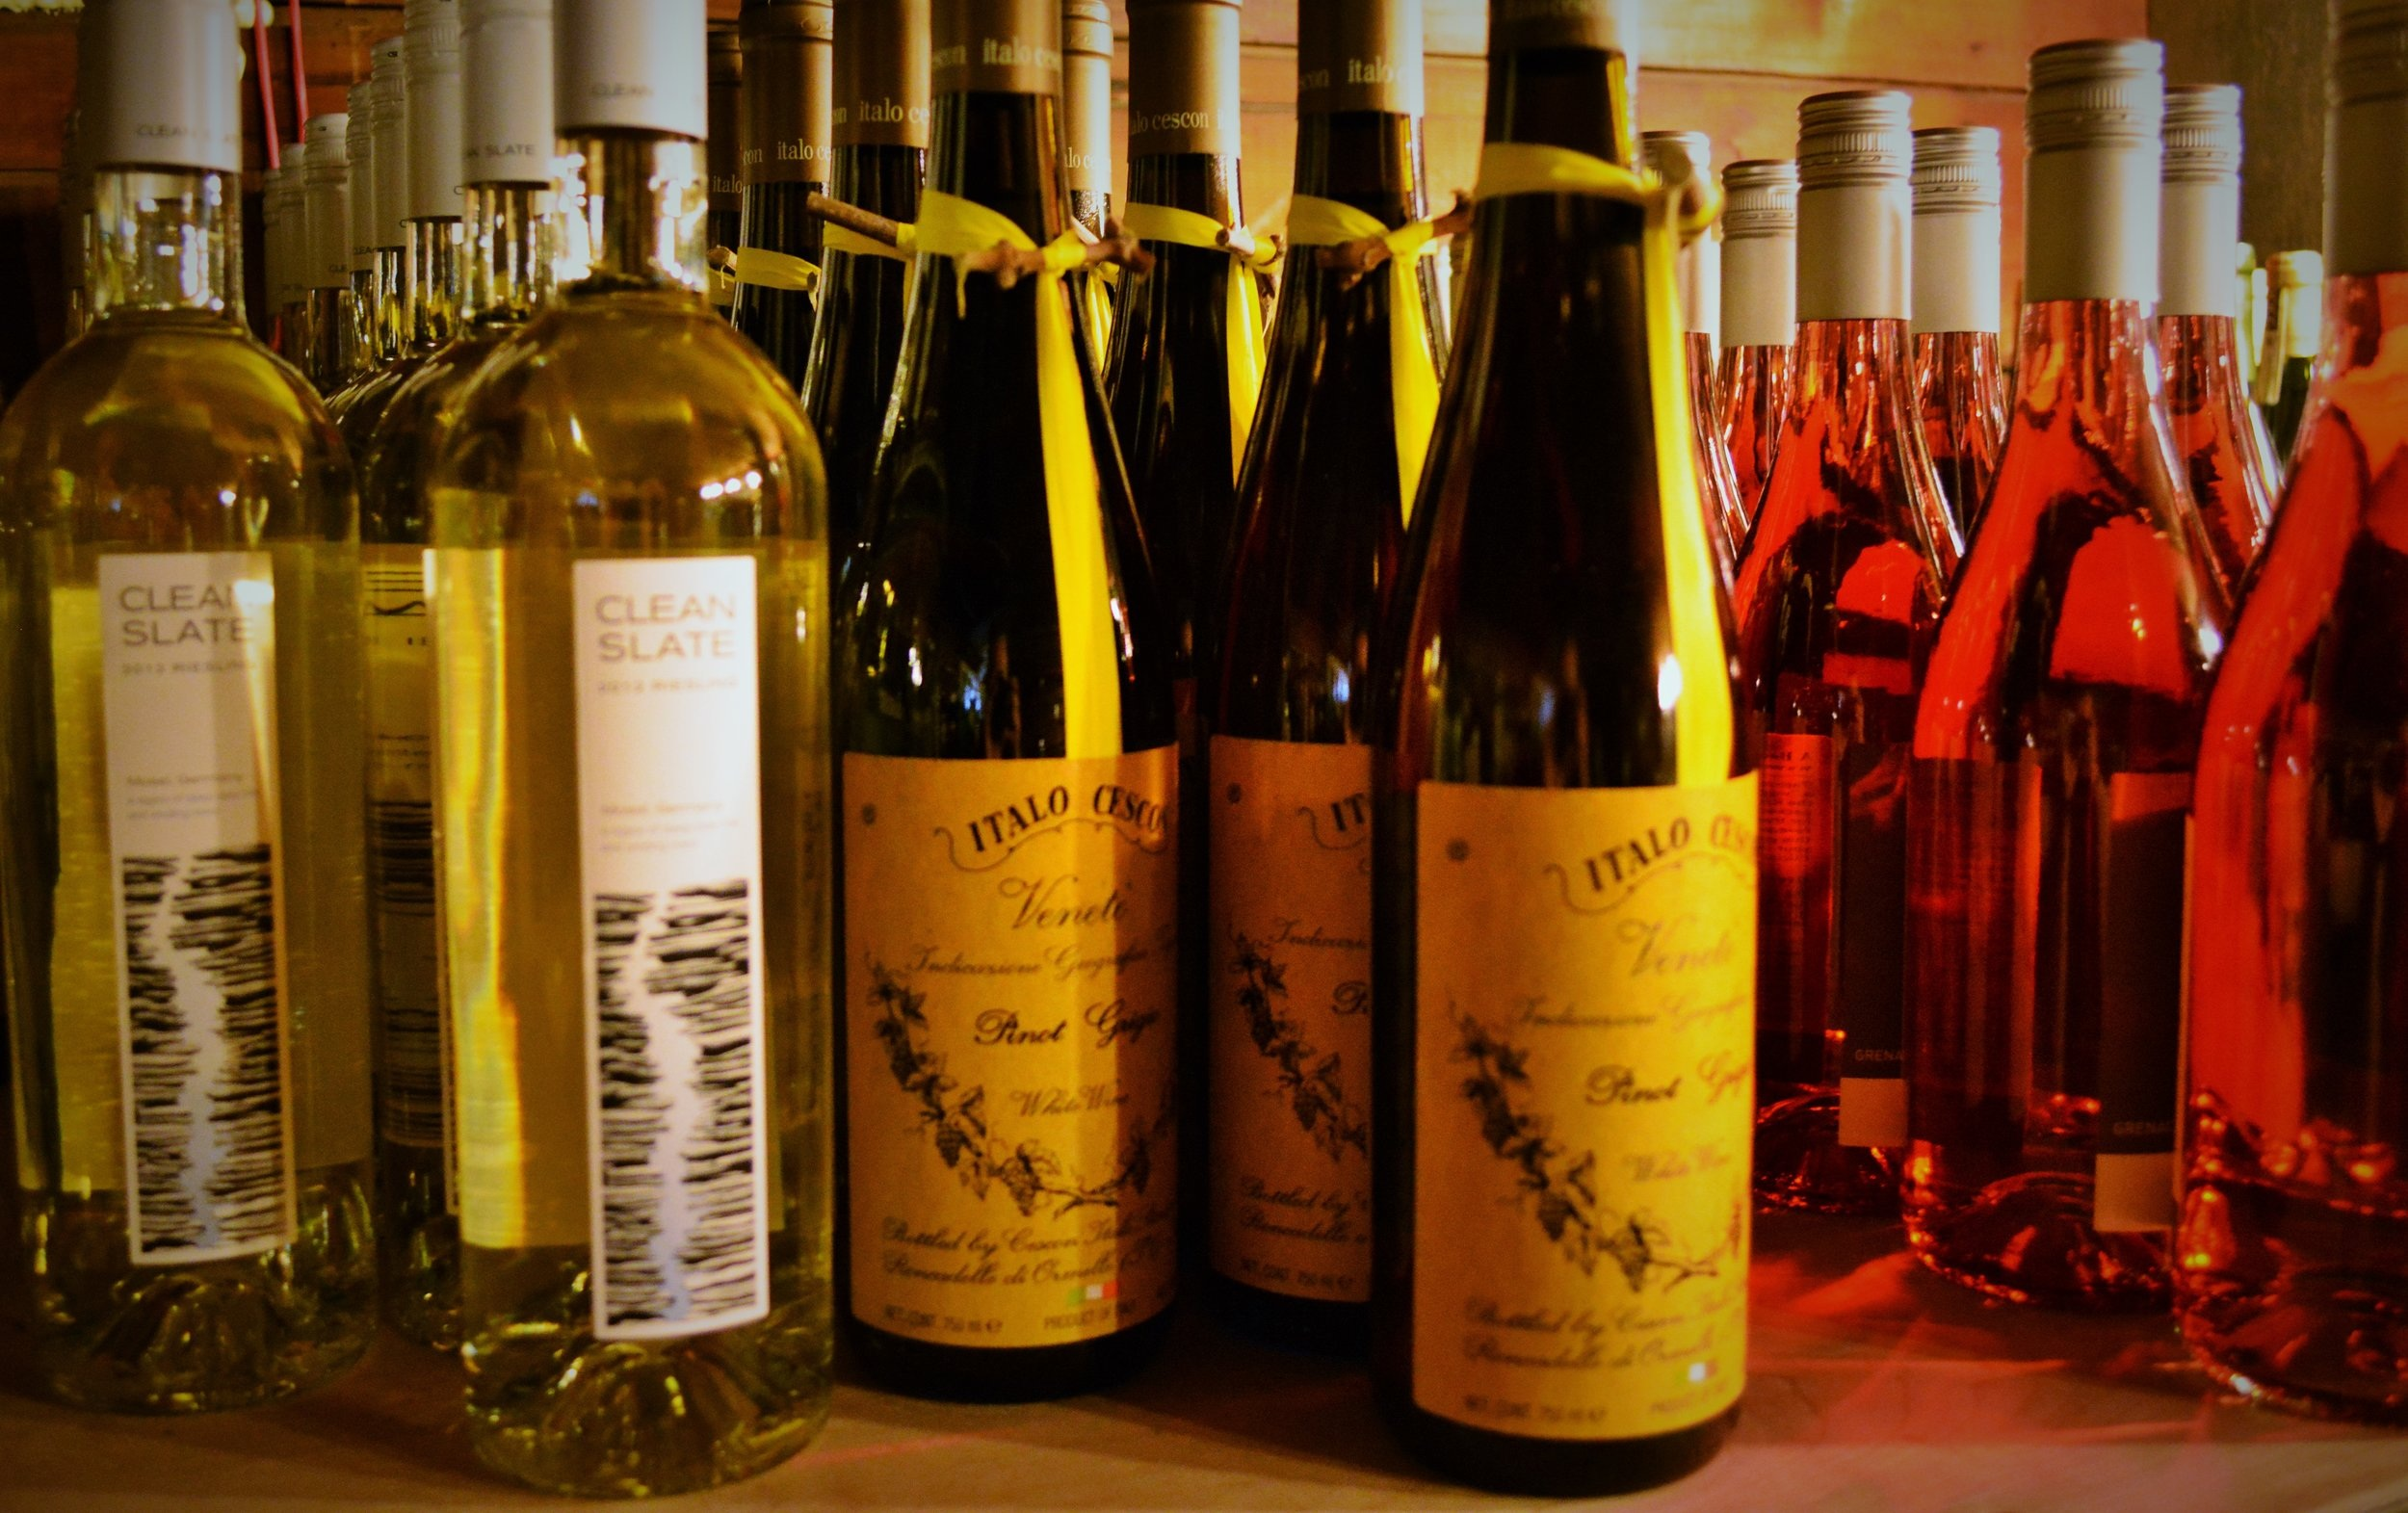 RBG has a full selection of wine for you to enjoy!